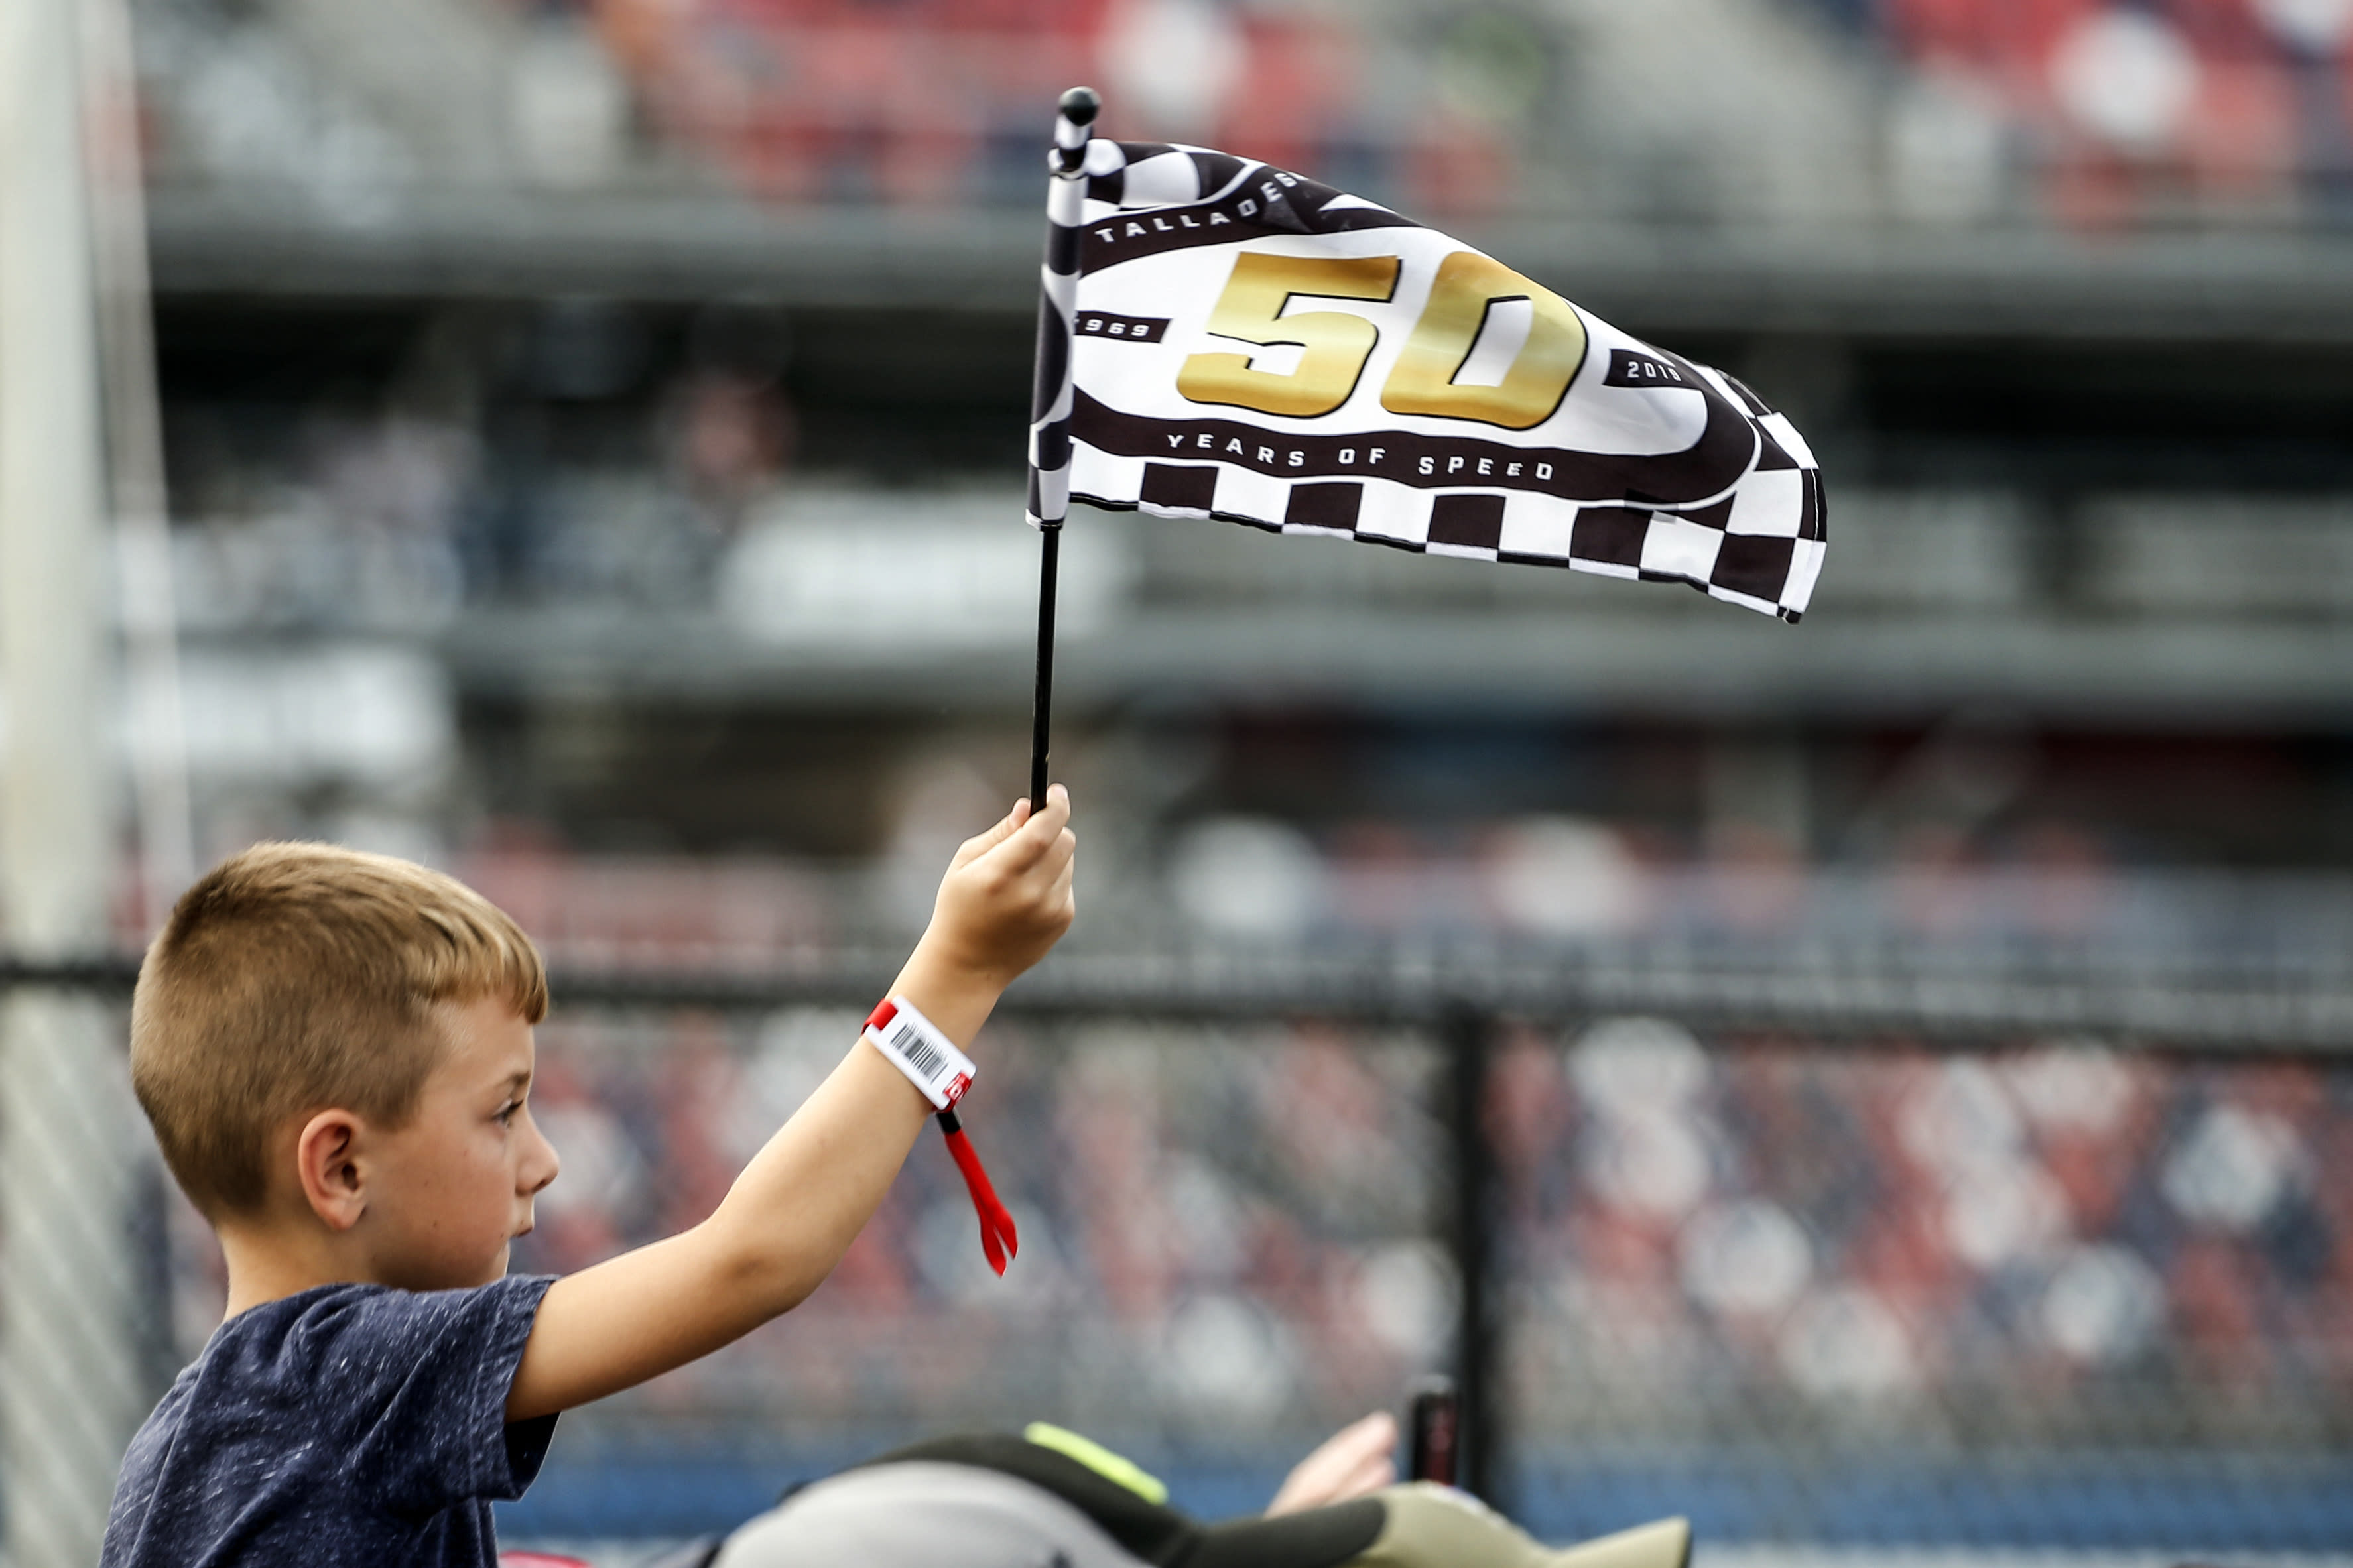 NASCAR closes $2B purchase of International Speedway Corp.